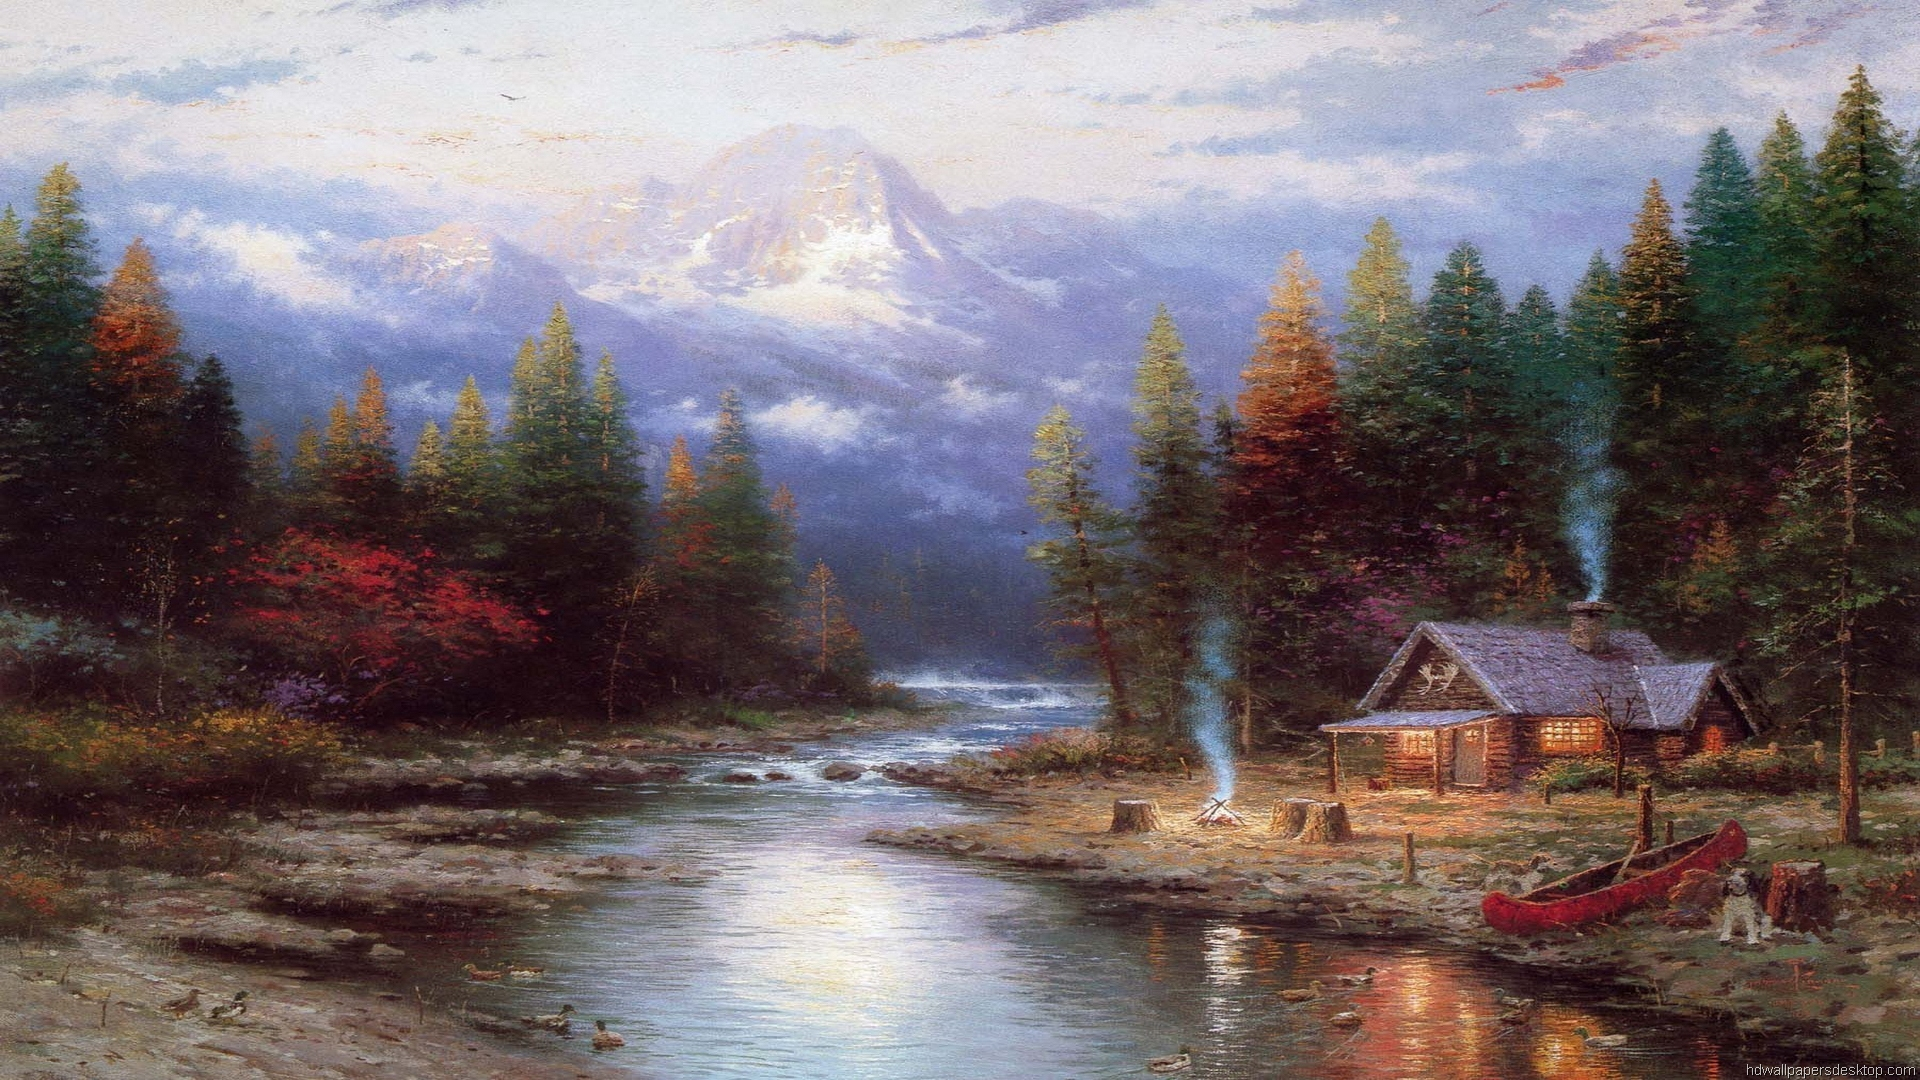 thomas kinkade wallpaper 1920x1080 - photo #11